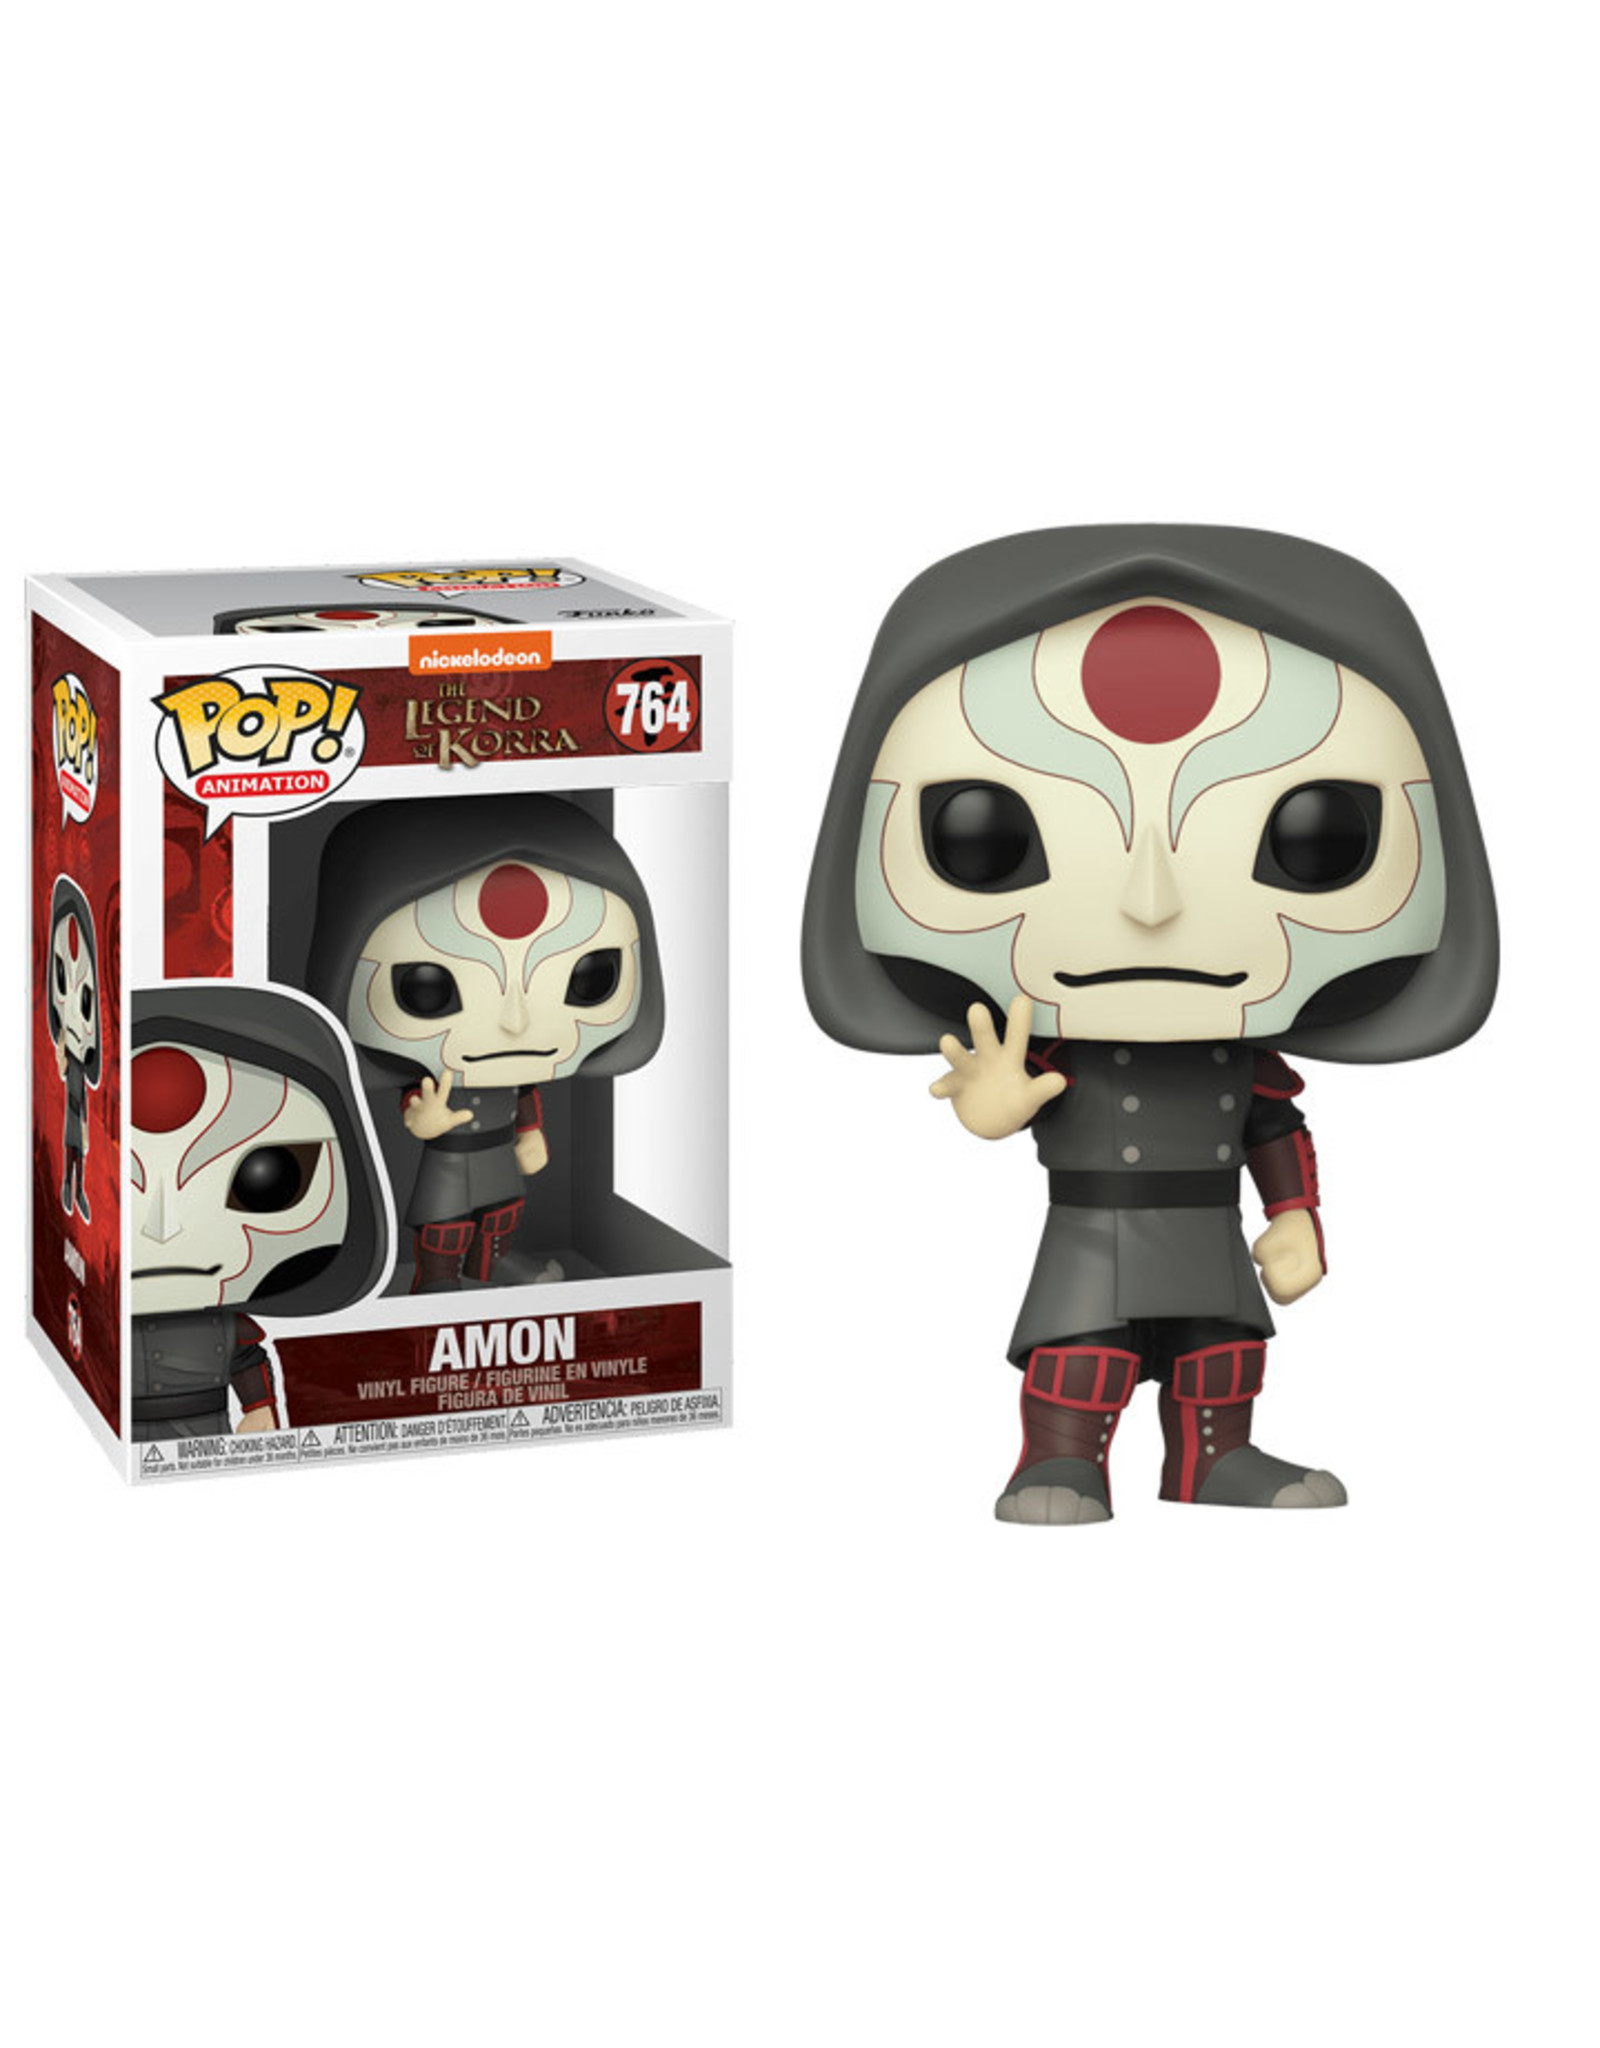 FUNKO POP LEGEND OF KORRA AMON VINYL FIG